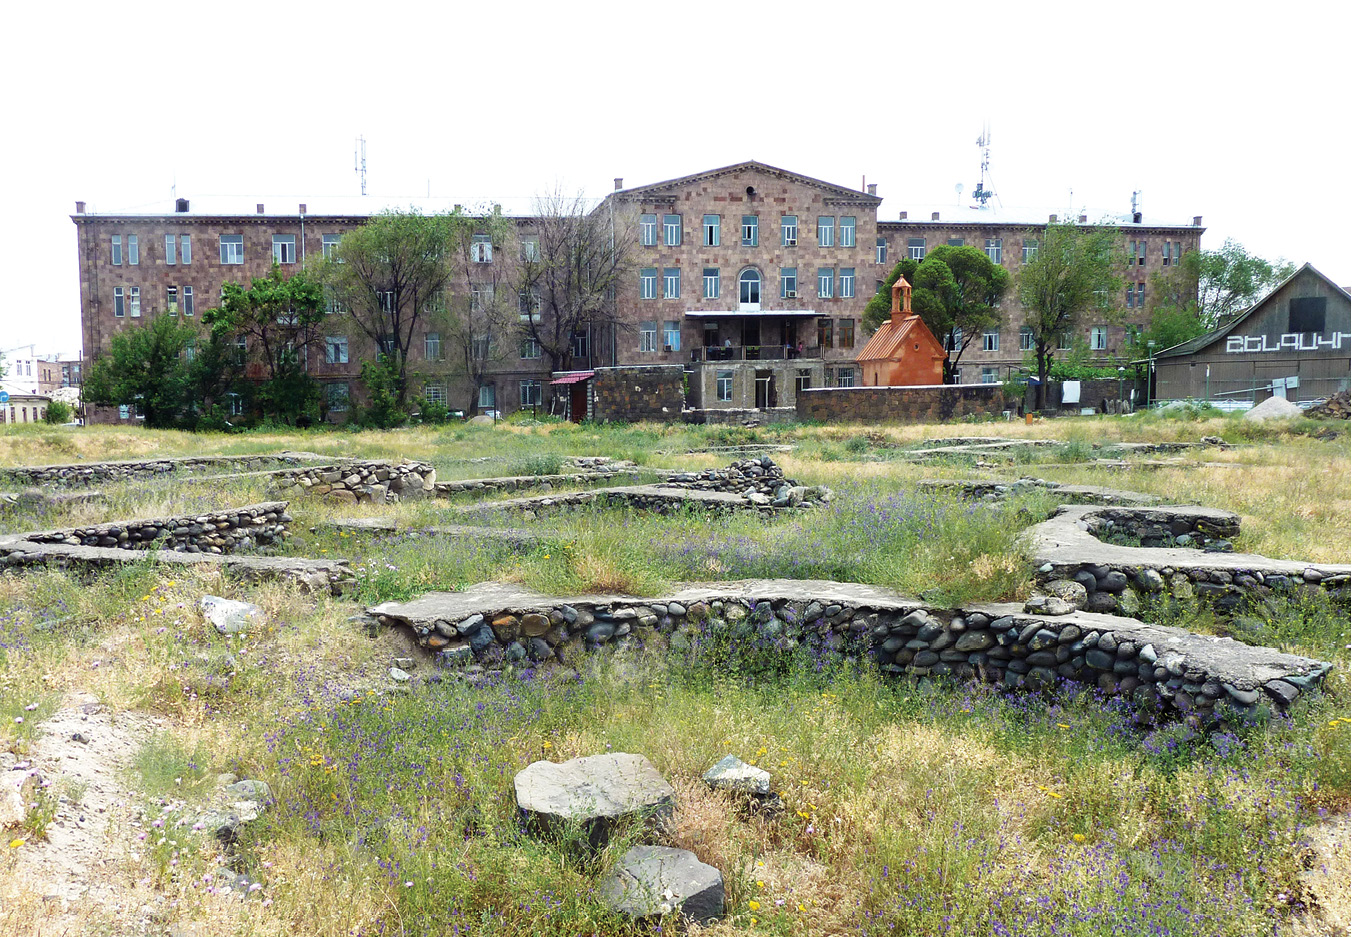 below The Shengavit hospital, built by the Soviets over the top of the Neolithic hillfort. Note the remains of the Neolithic houses in the